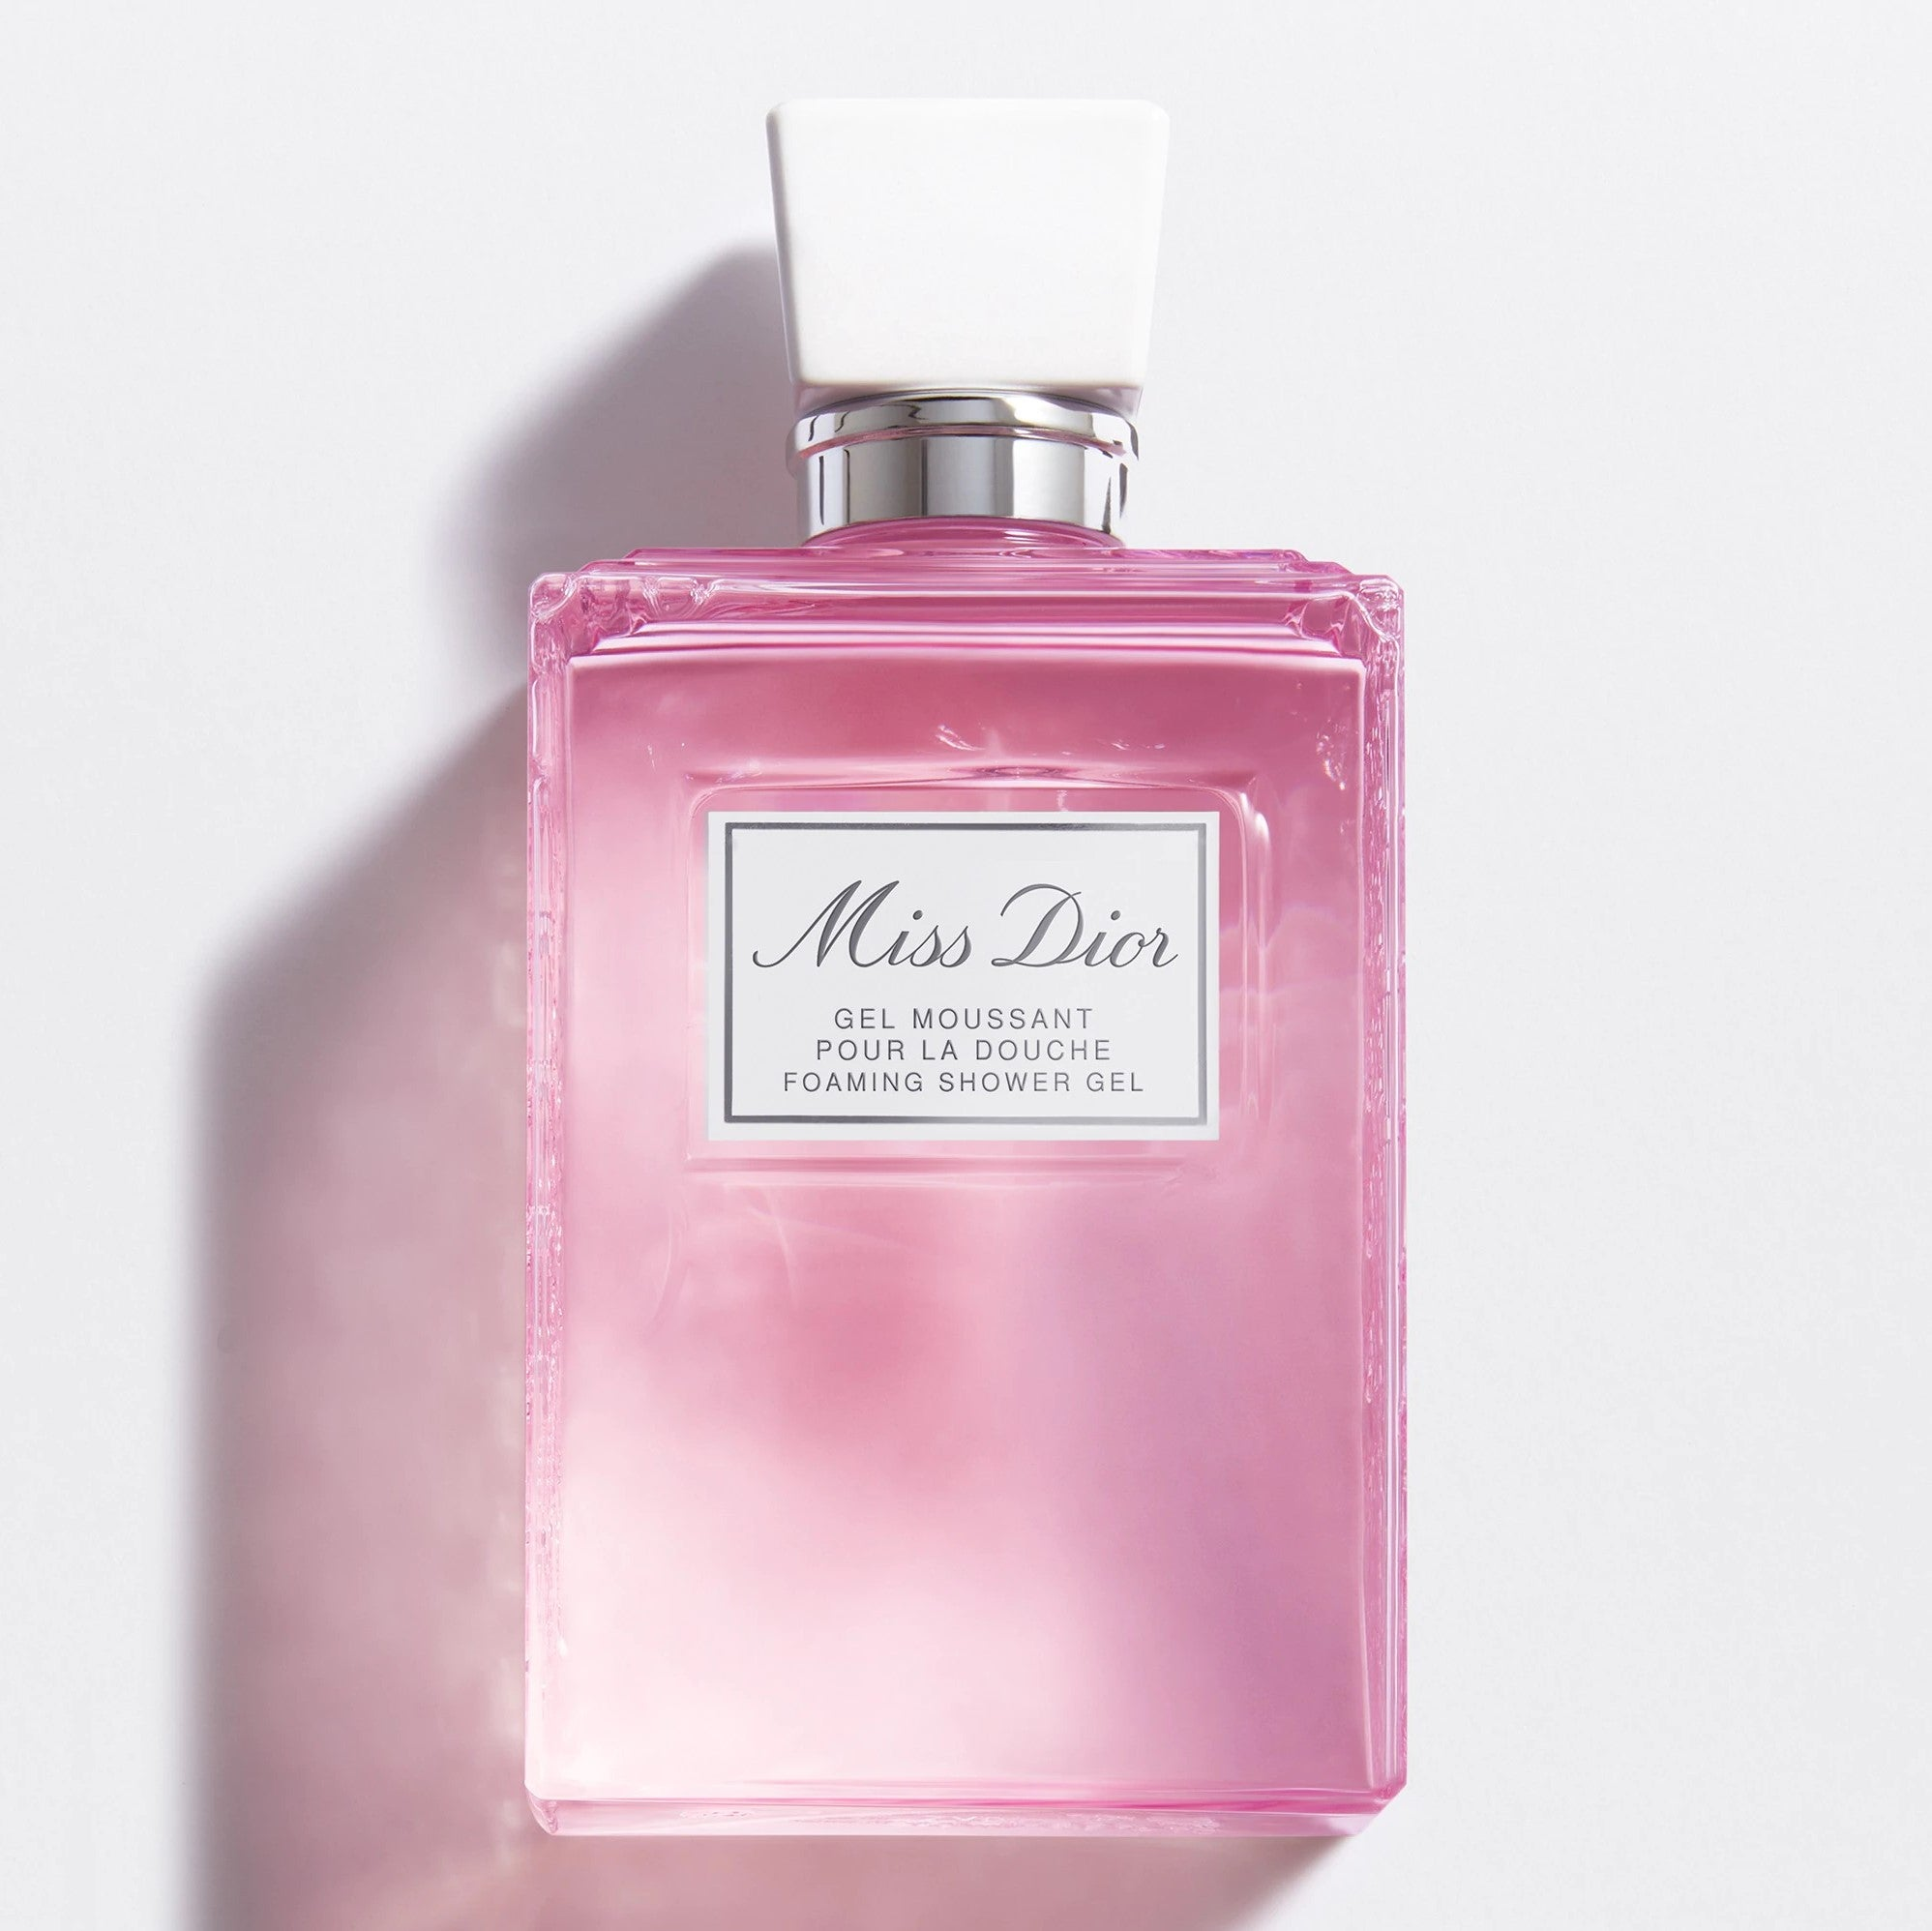 MISS DIOR | Foaming shower gel